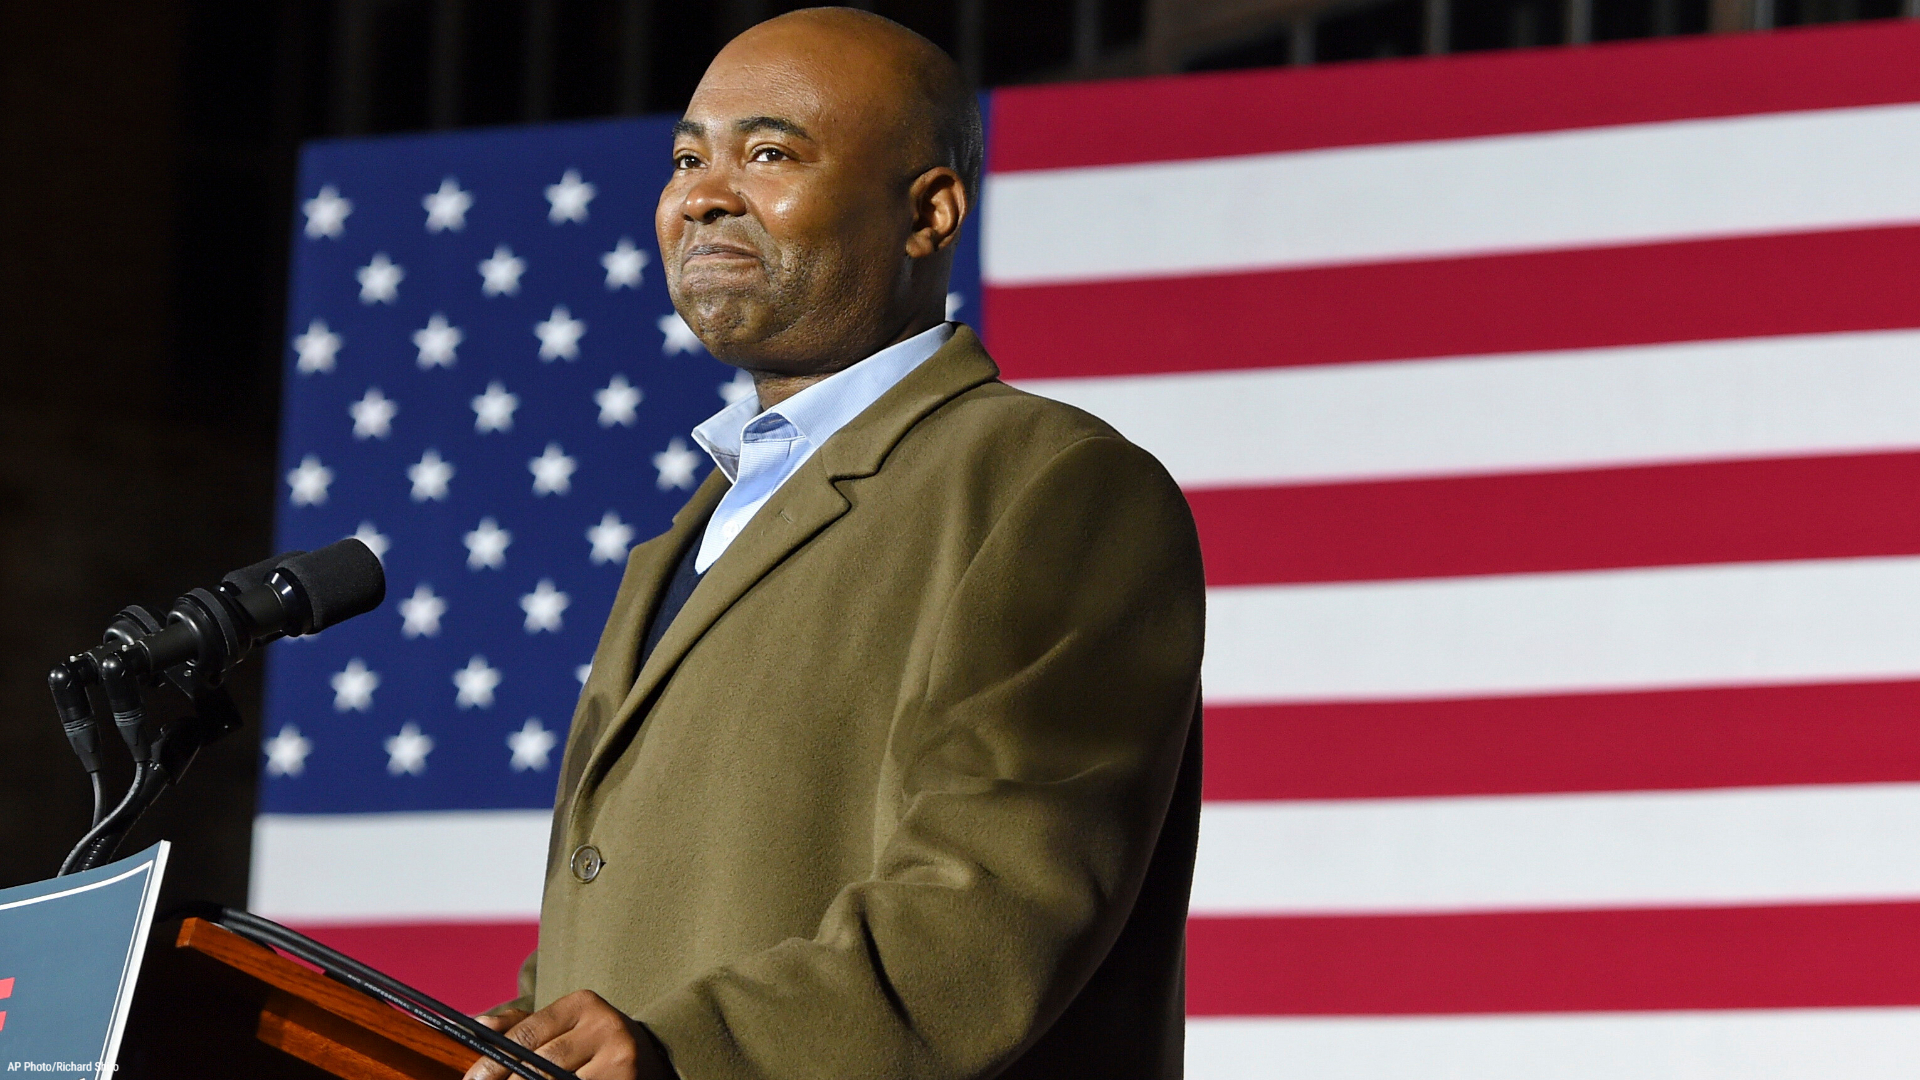 In this Nov. 3, 2020, file photo Democratic Senate candidate Jaime Harrison speaks at a watch party in Columbia, S.C., after losing the Senate race. Harrison, the longtime Democratic Party official, is President-elect Joe Biden's choice to lead the national party, according to multiple party officials. (AP Photo/Richard Shiro)